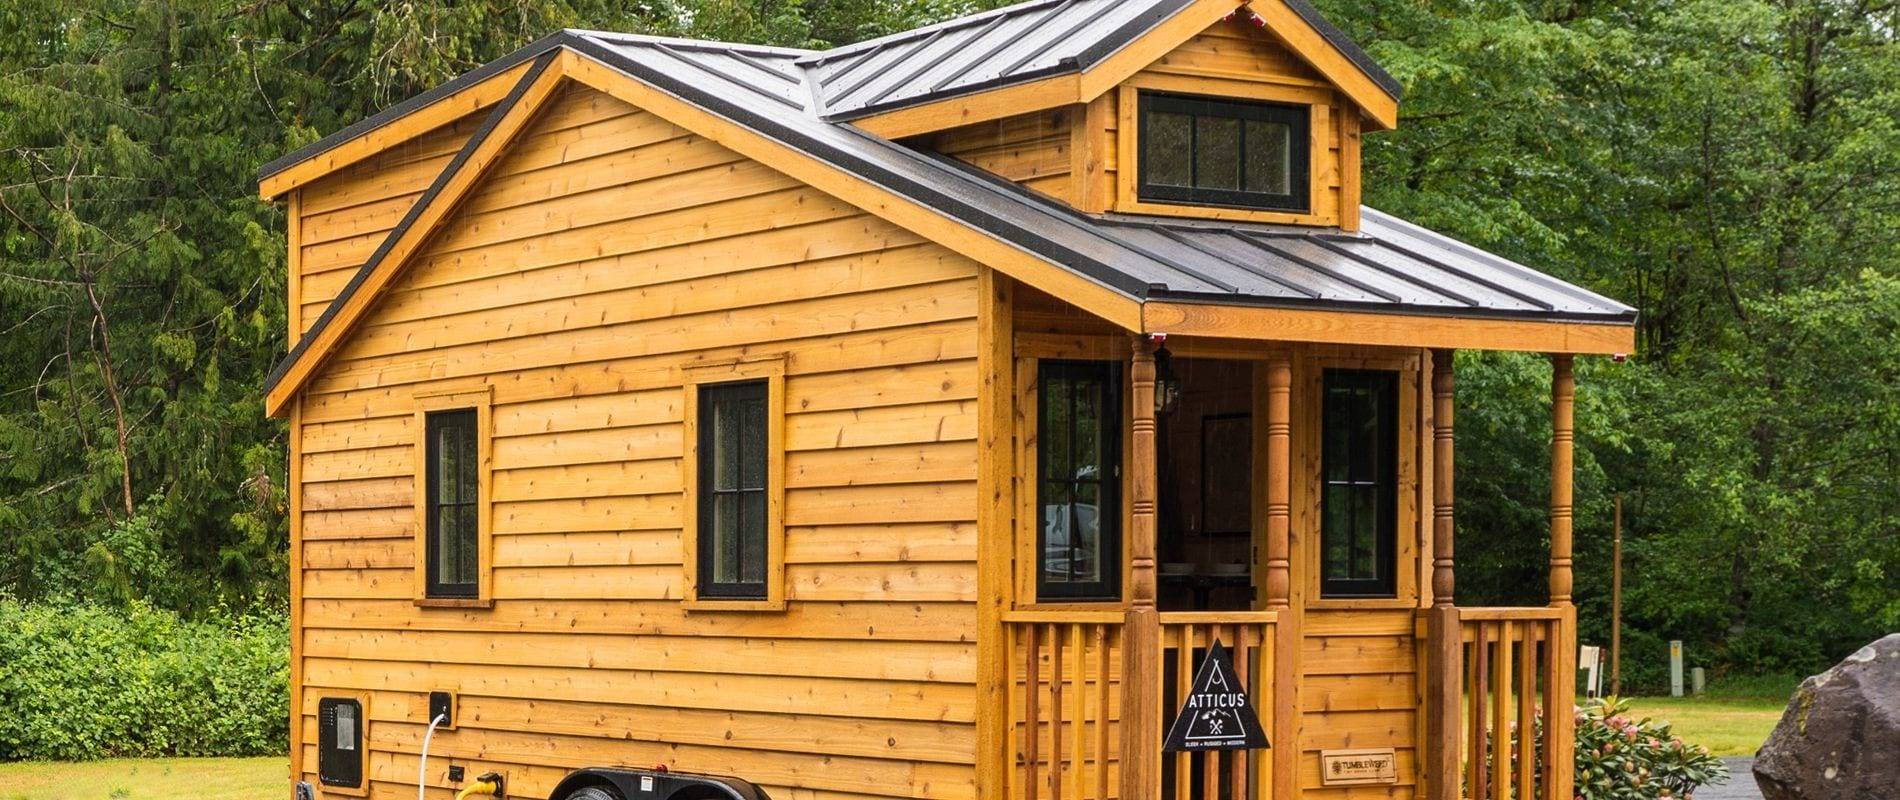 Atticus Tiny House With Modern And Manly Interior